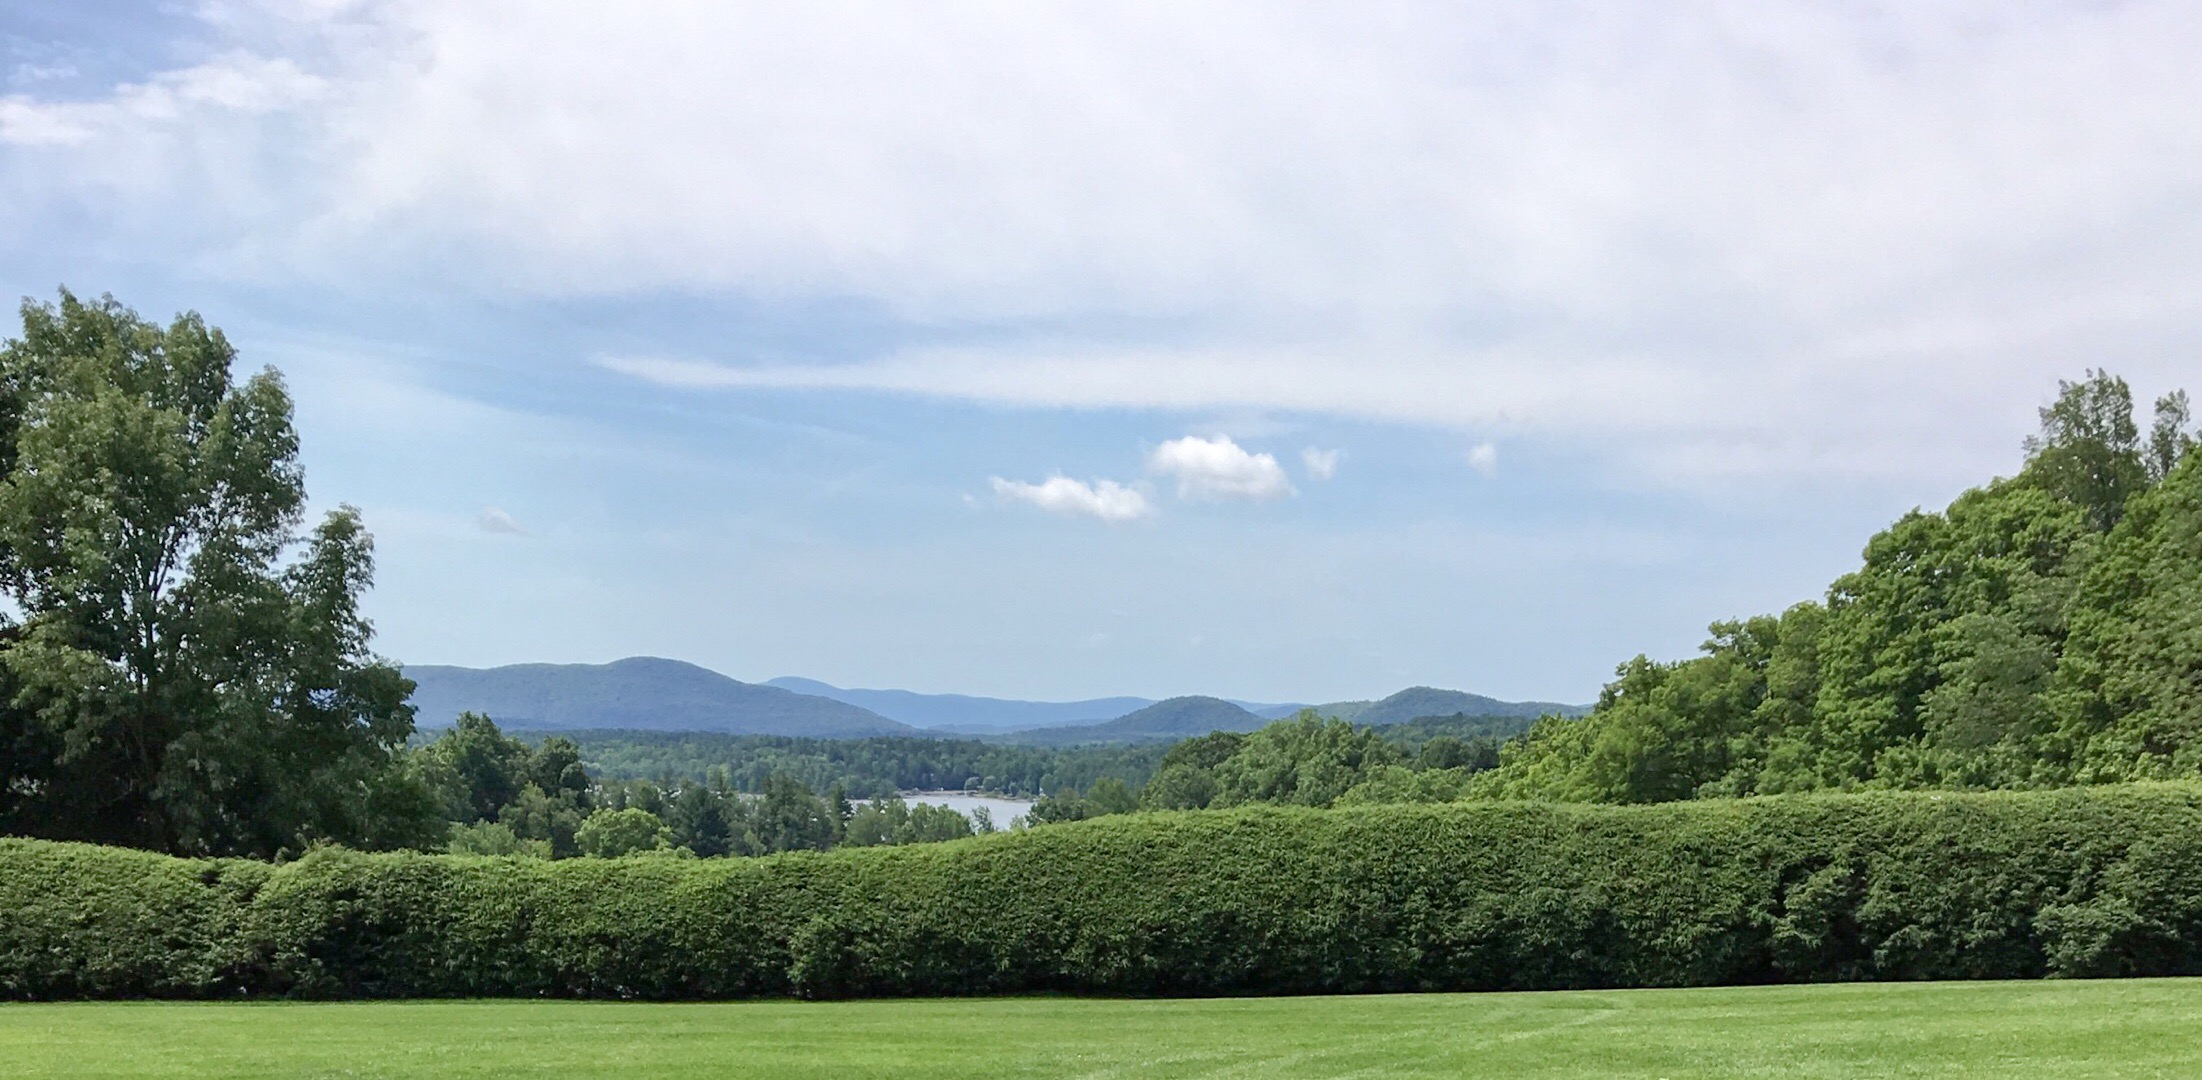 Overlooking the Stockbridge Bowl from the lawn at Tanglewood.